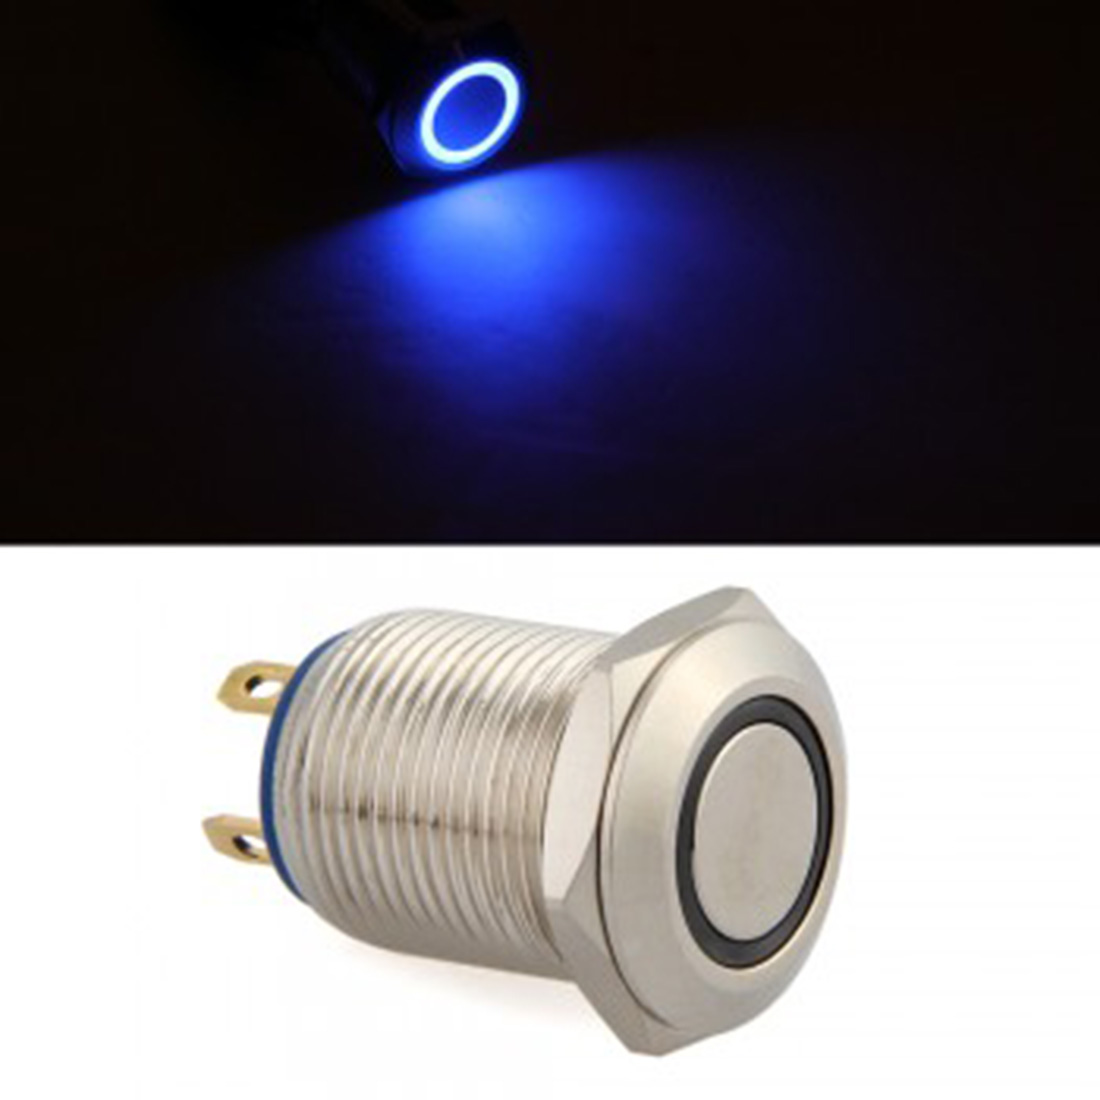 Dewtreetali free shipping new Hot Selling Blue LED Momentary On/Off Push Buttons Switch For Car Auto